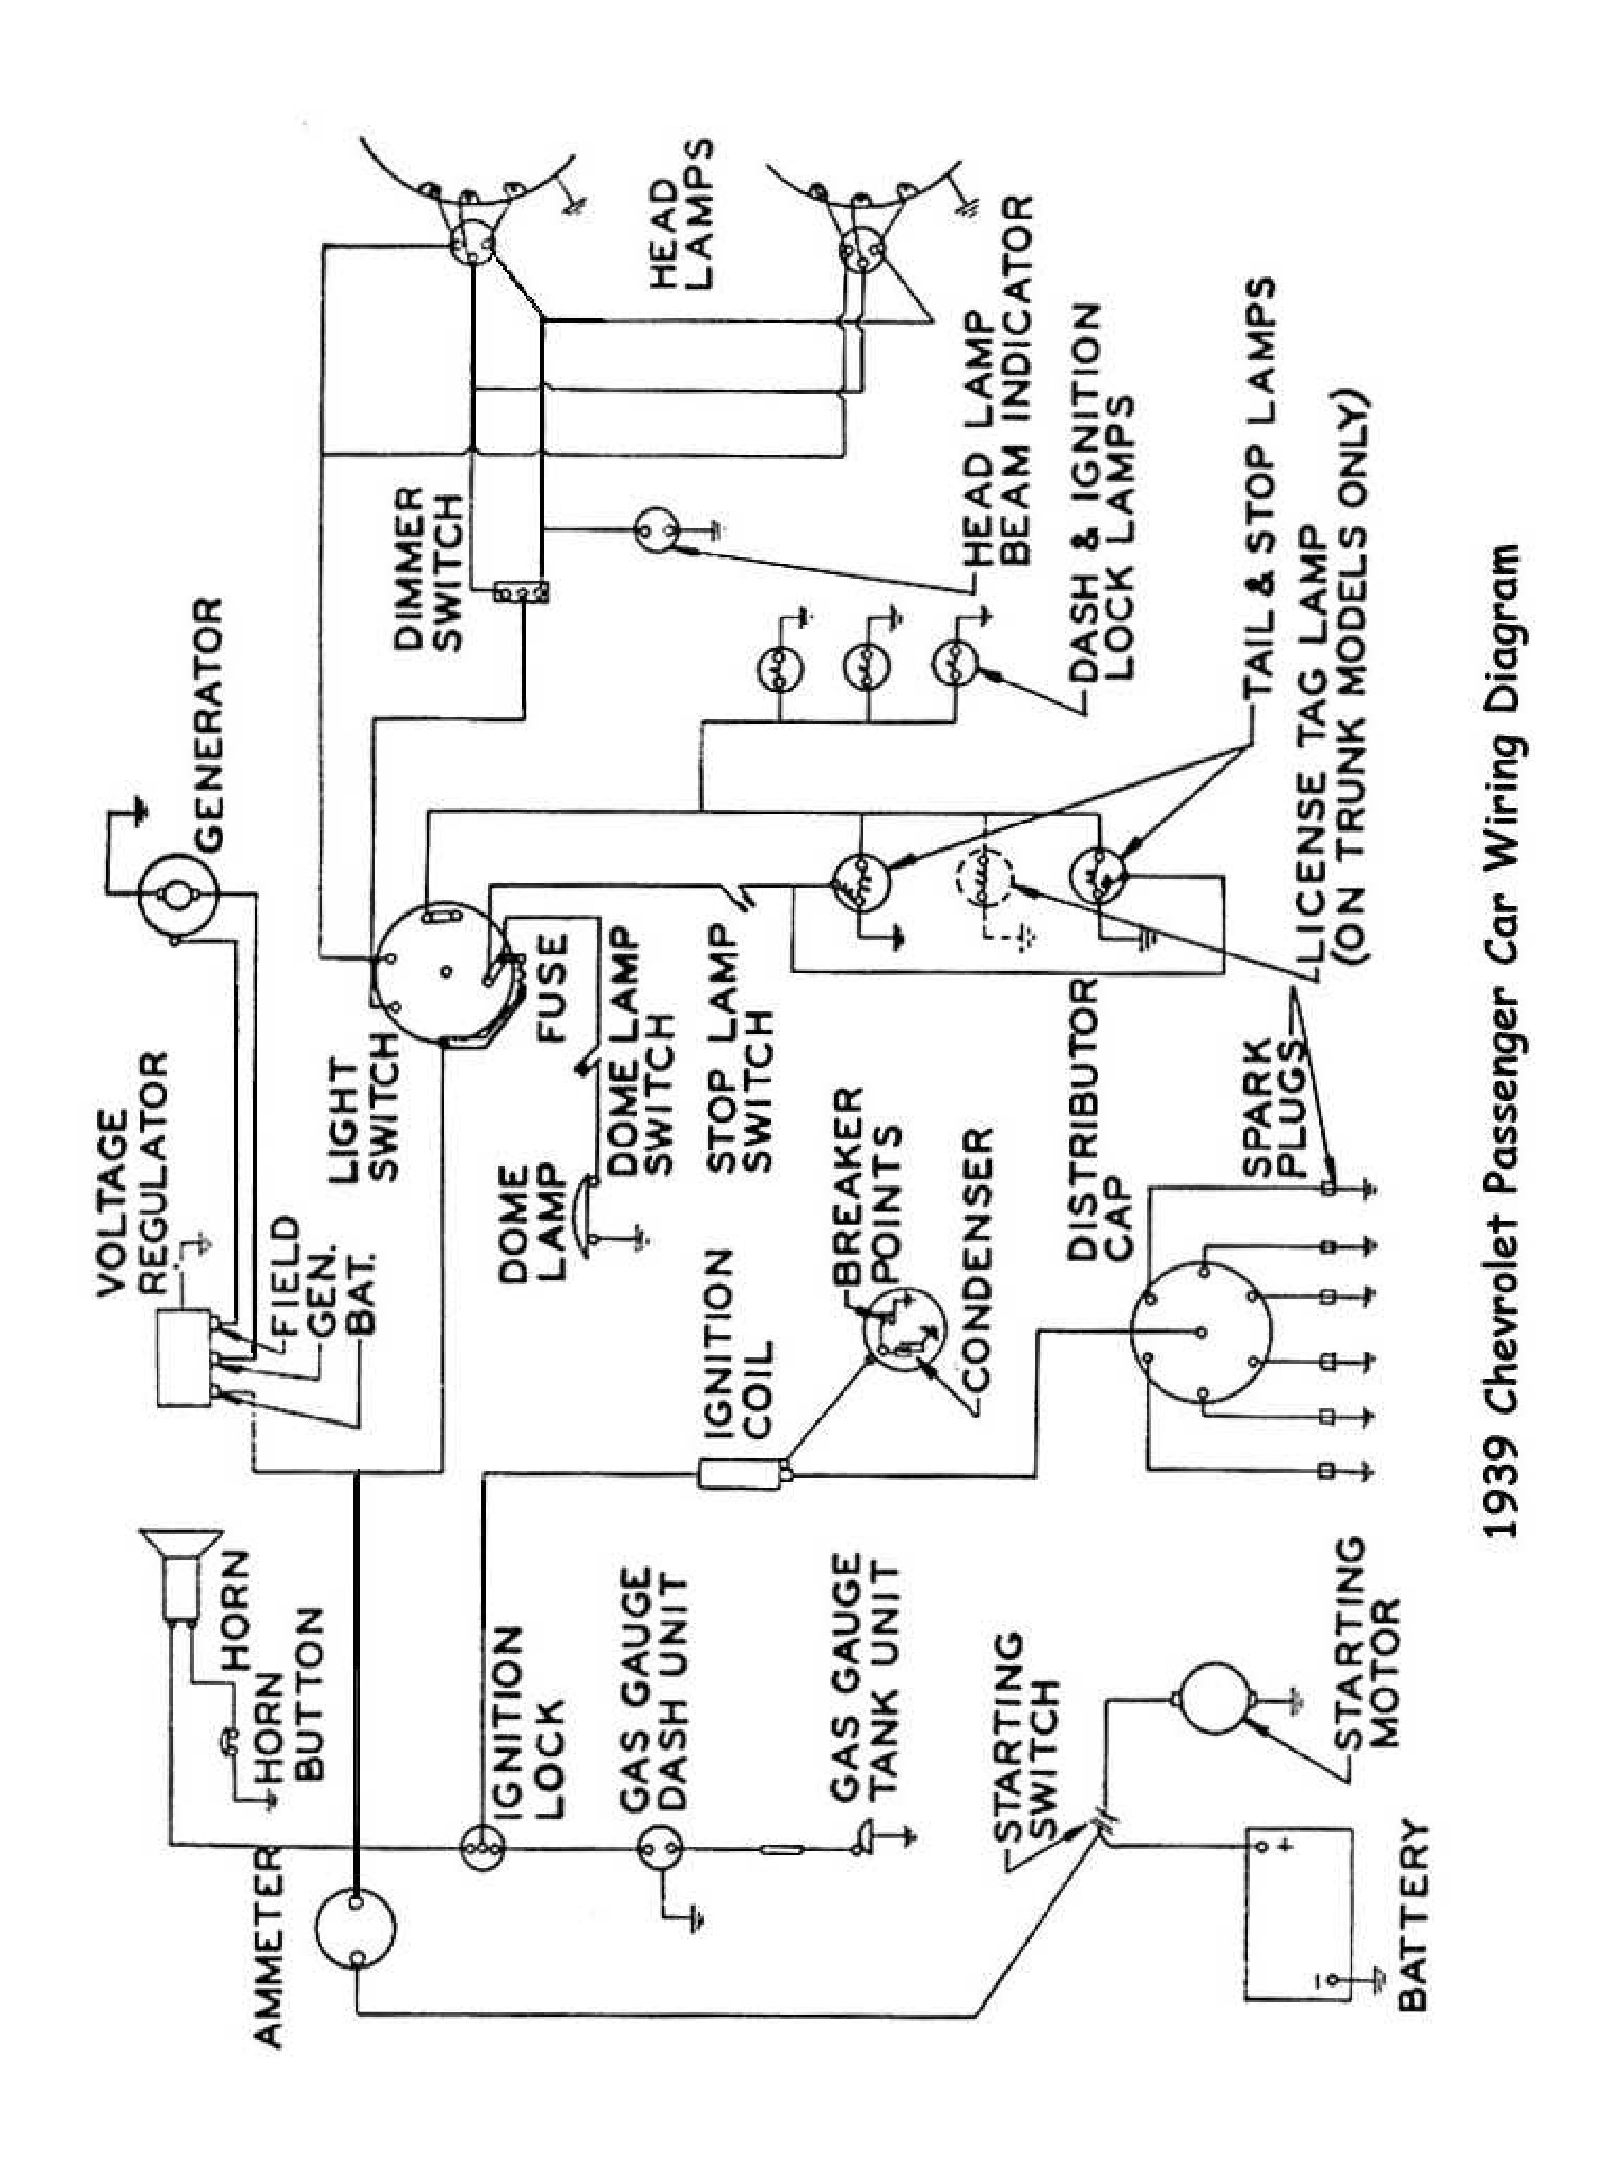 Collection Of Elevator Wiring Diagram Sample